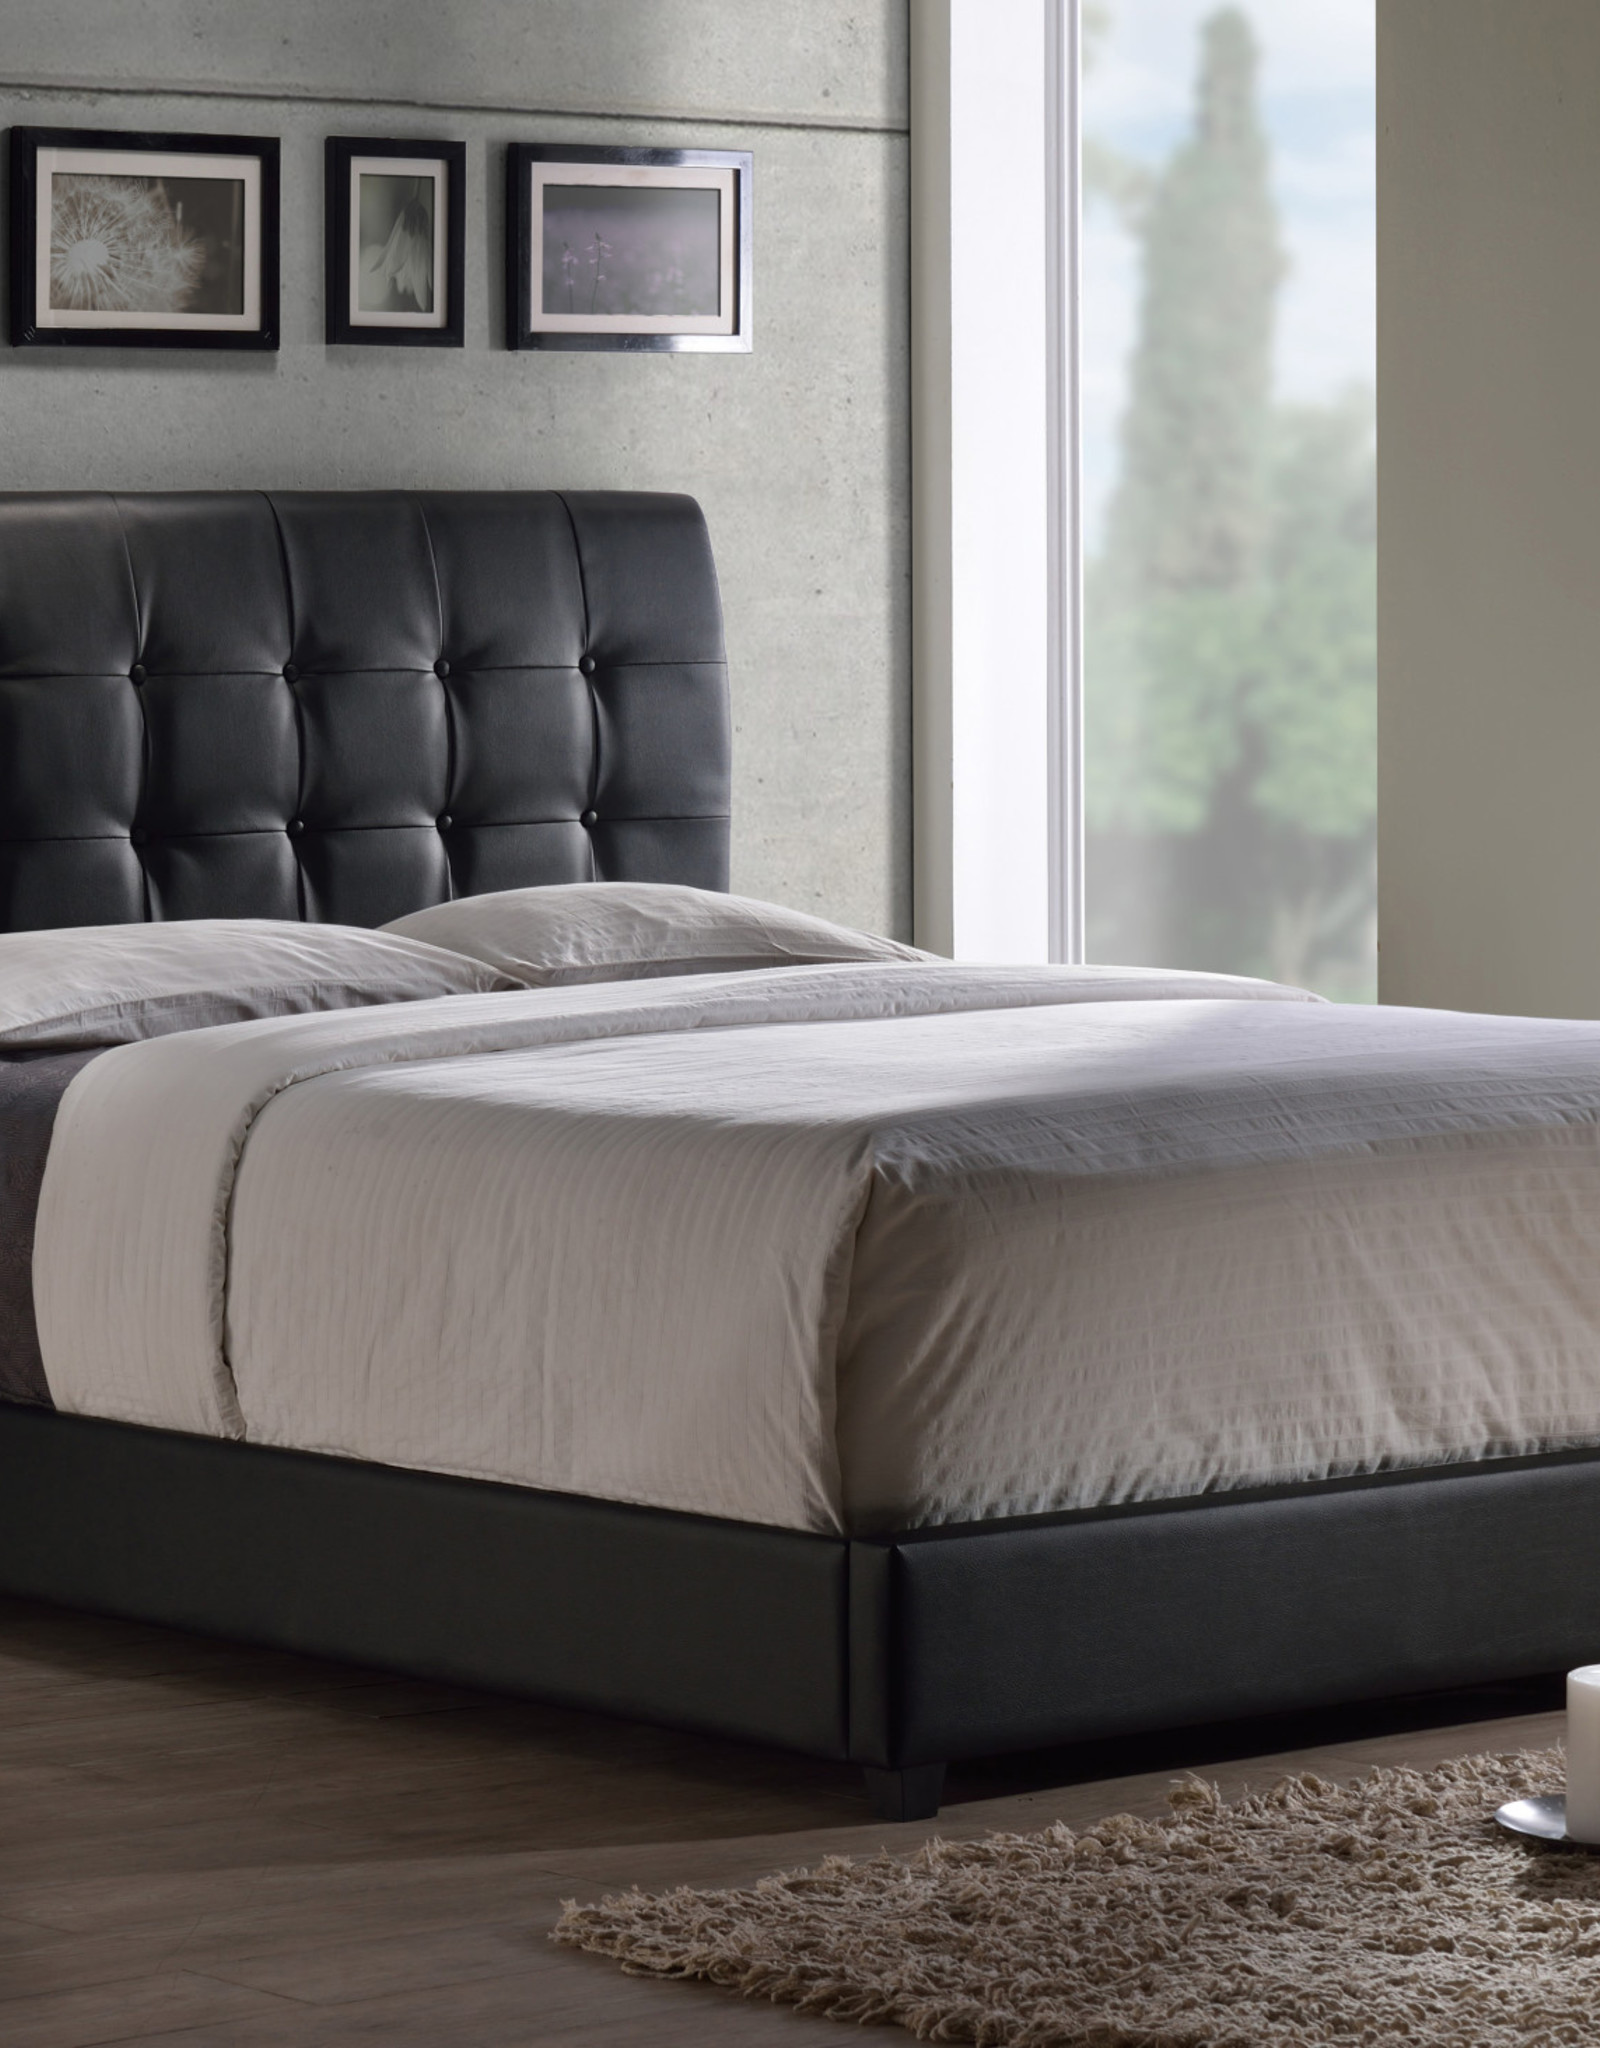 Lusso Bed (BLACK) (Includes headboard, footboard, and rails)